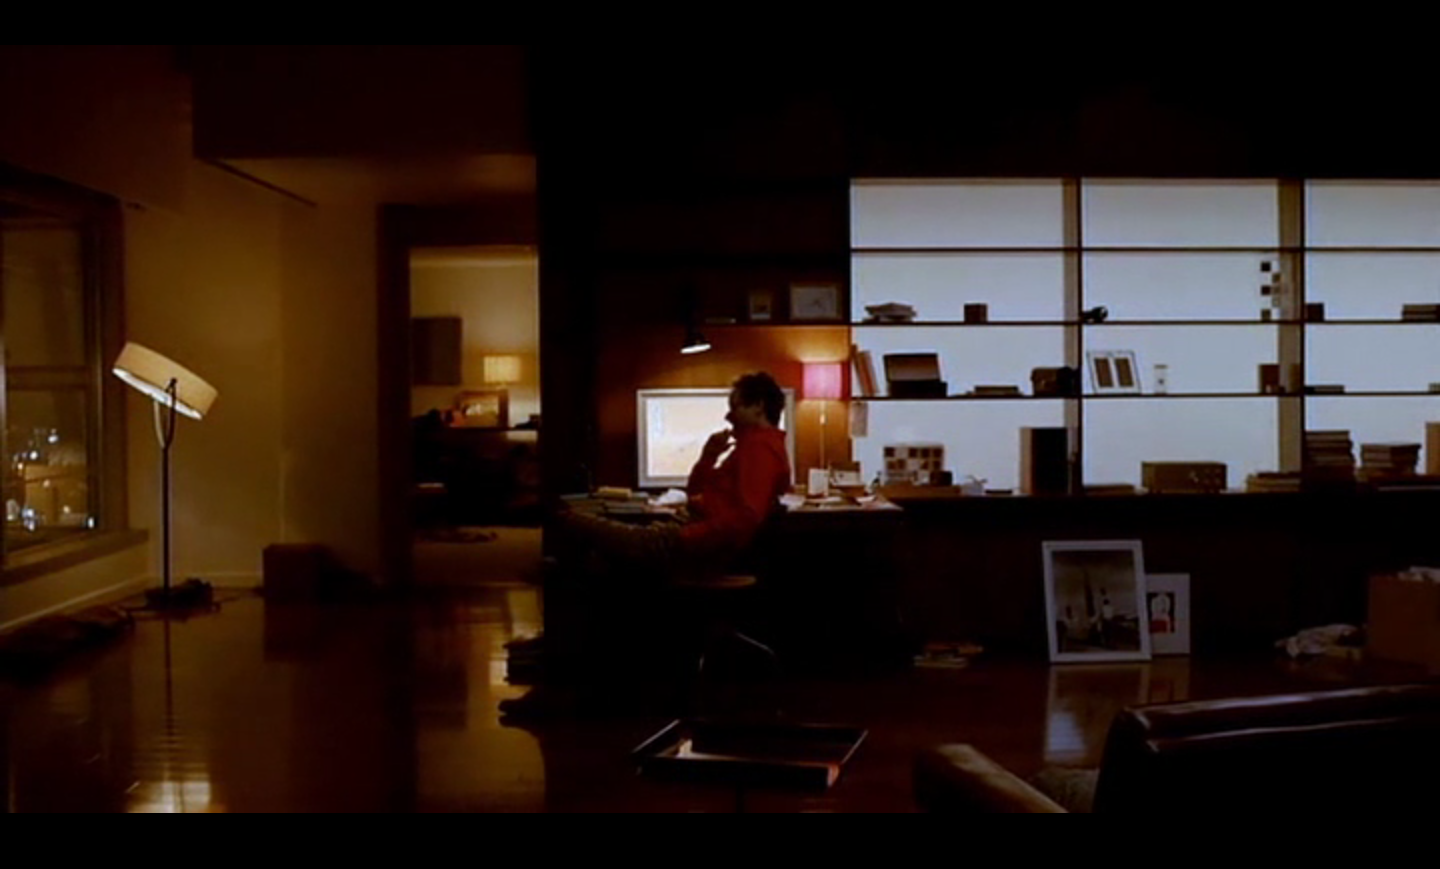 Awesome Lighting In Apartment From The Movie Her By Spike